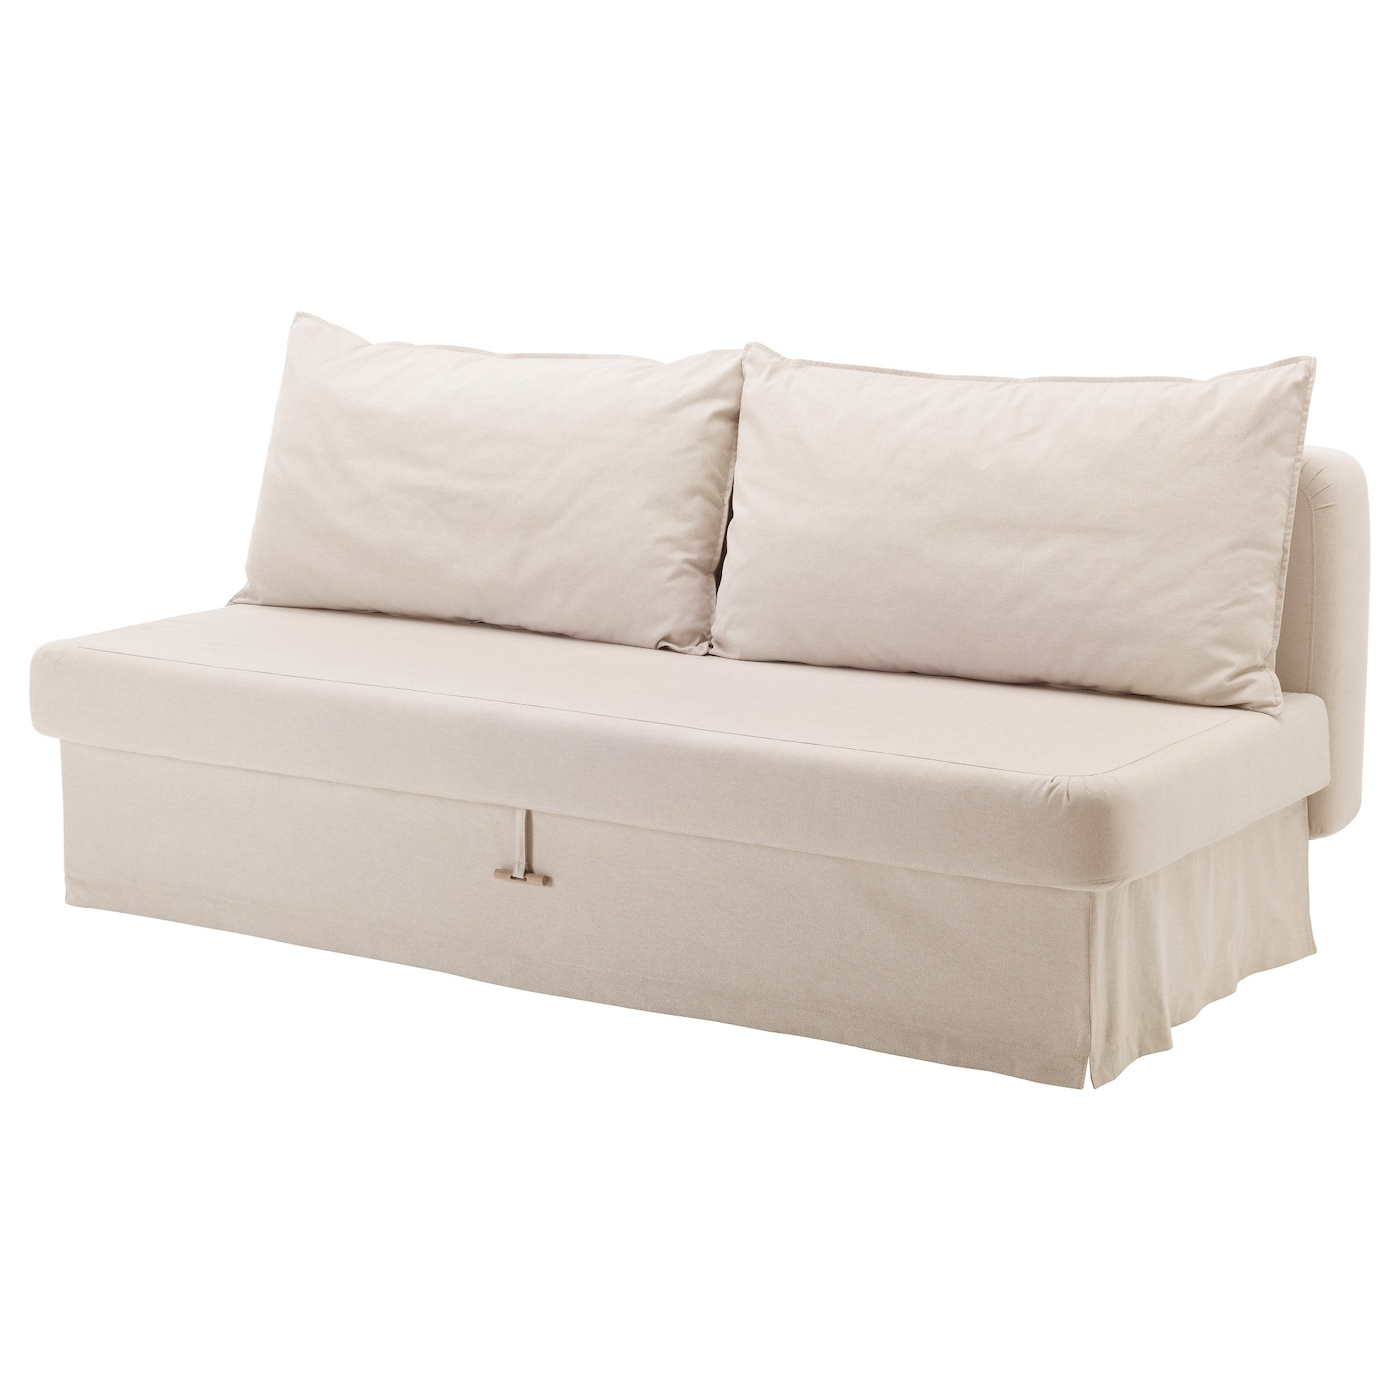 Himmene three seat sofa bed lofallet beige ikea Ikea divan beds